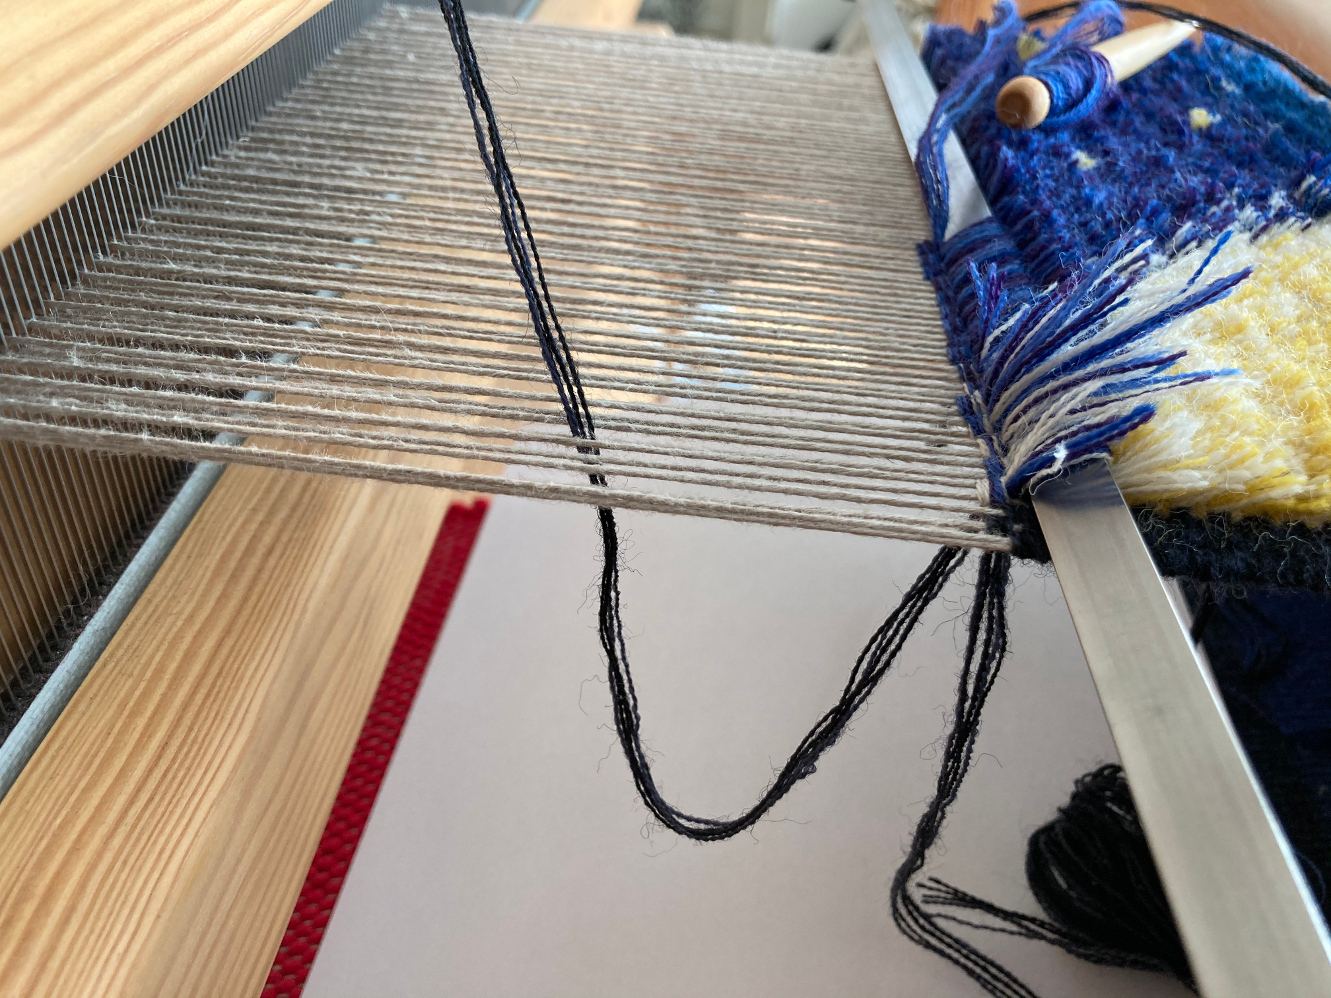 A carpet warp seen from the side, showing a ground weft loop pulled down between warp ends.